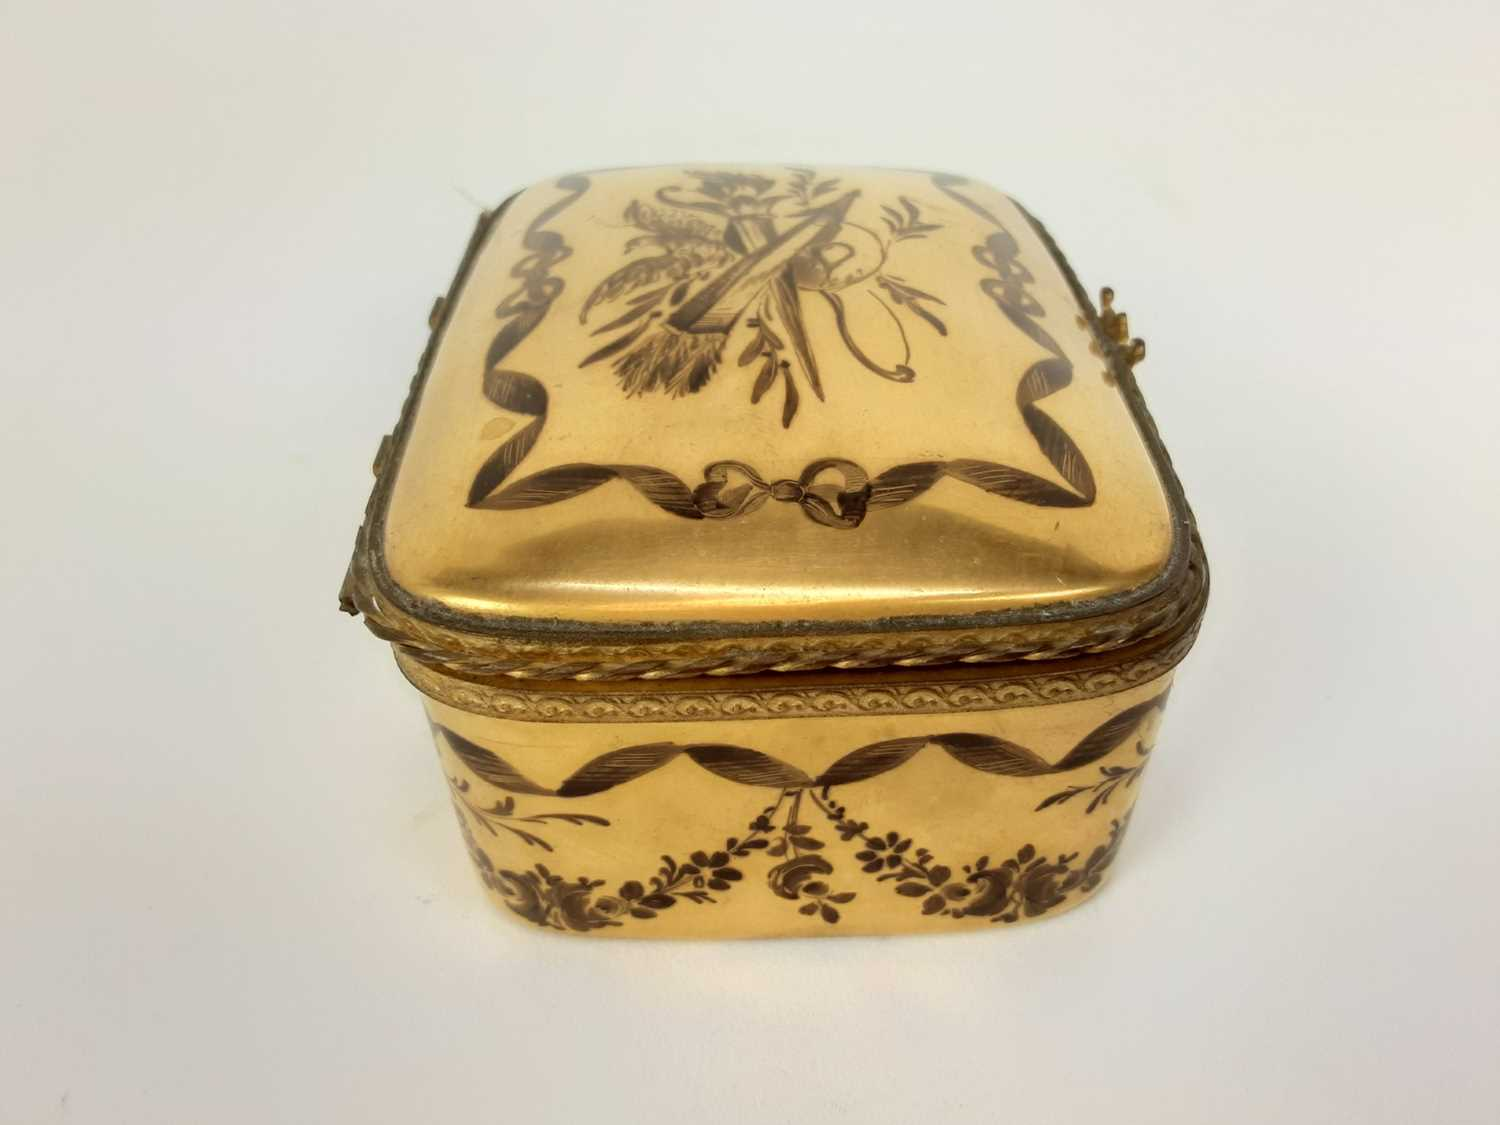 French ormolu-mounted porcelain box, late 19th century, probably Limoges, gilded and enamelled en gr - Image 4 of 7